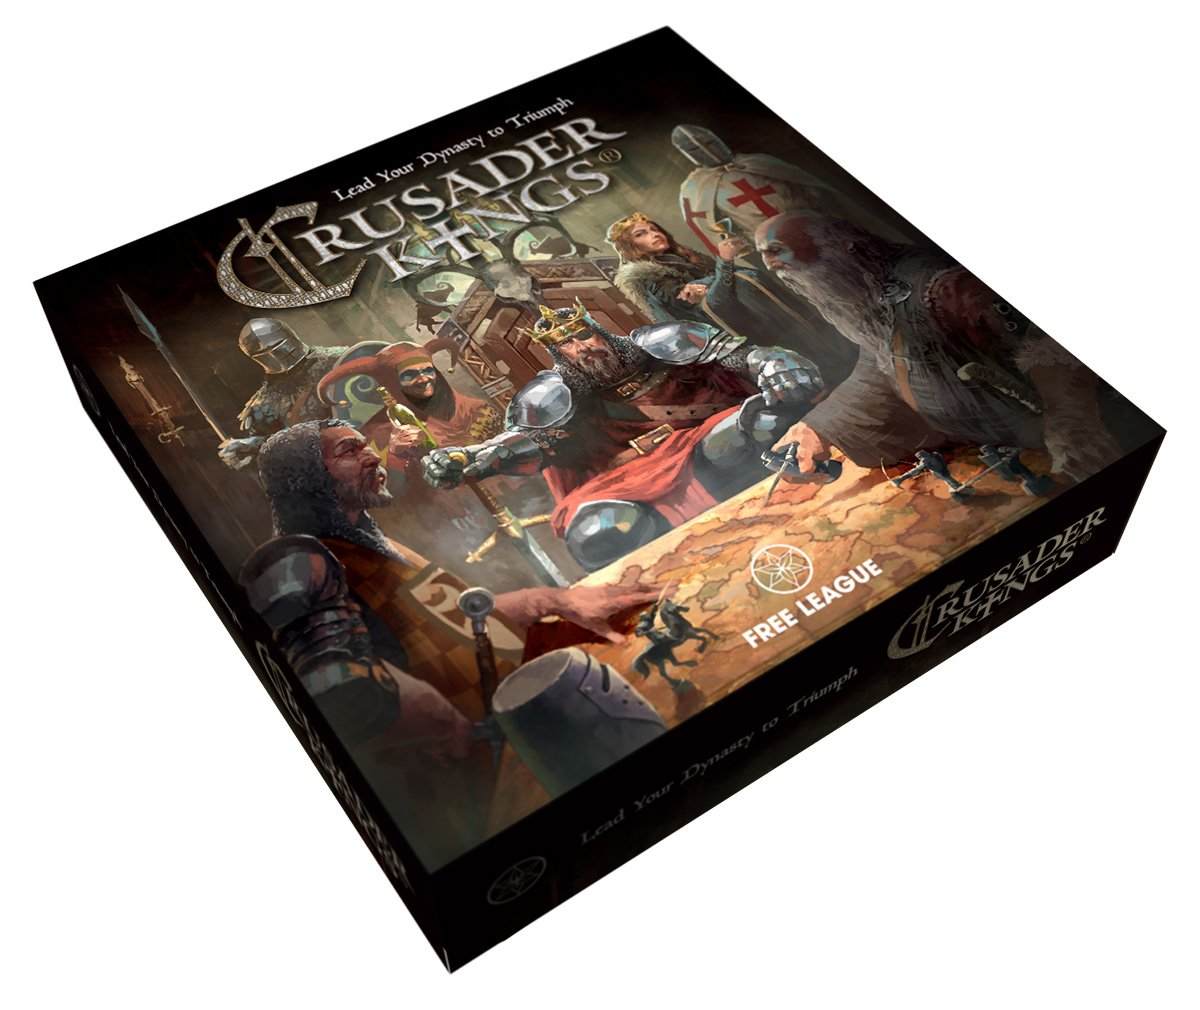 Crusader Kings – The Board Game review